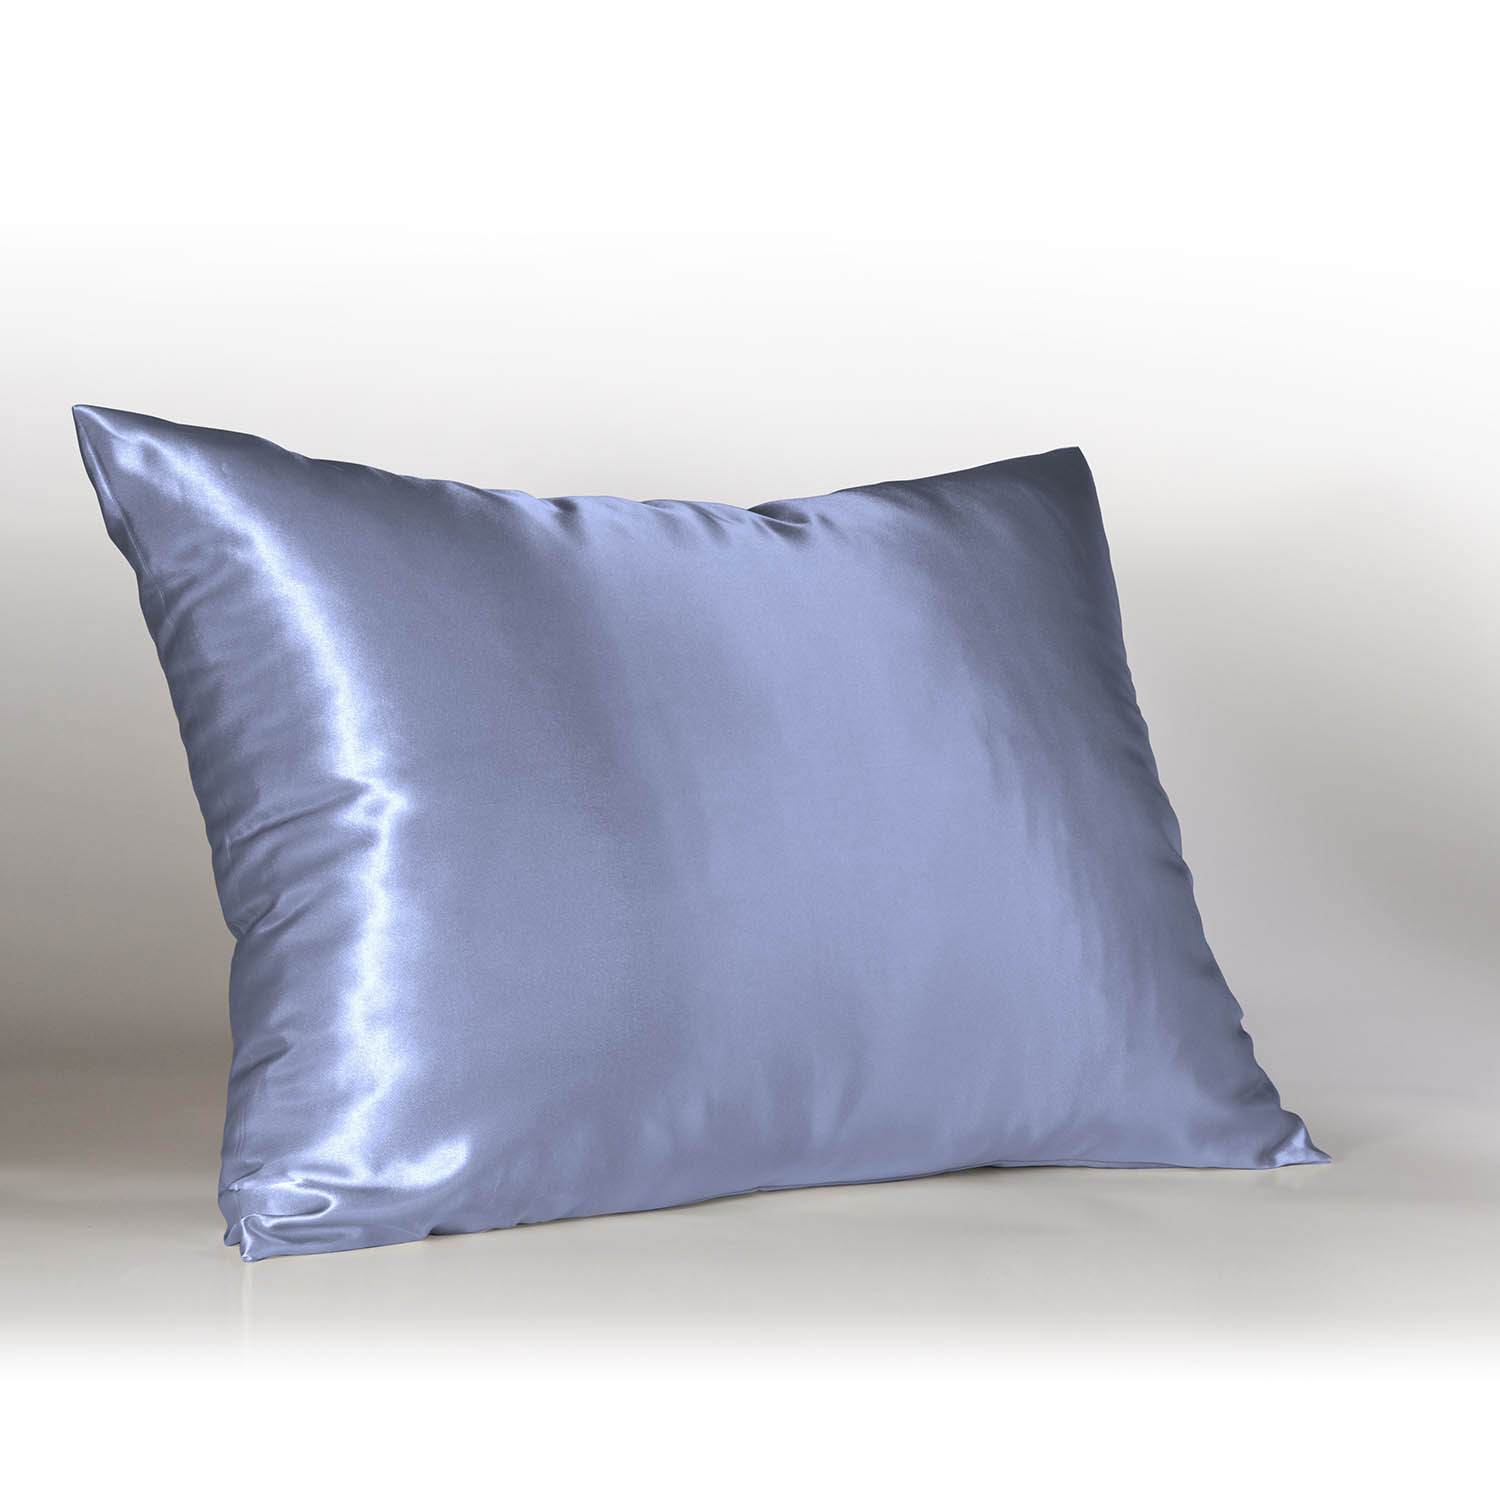 Satin Pillowcase Prevent Hair Loss: Satin Pillowcase W/Hidden Zipper